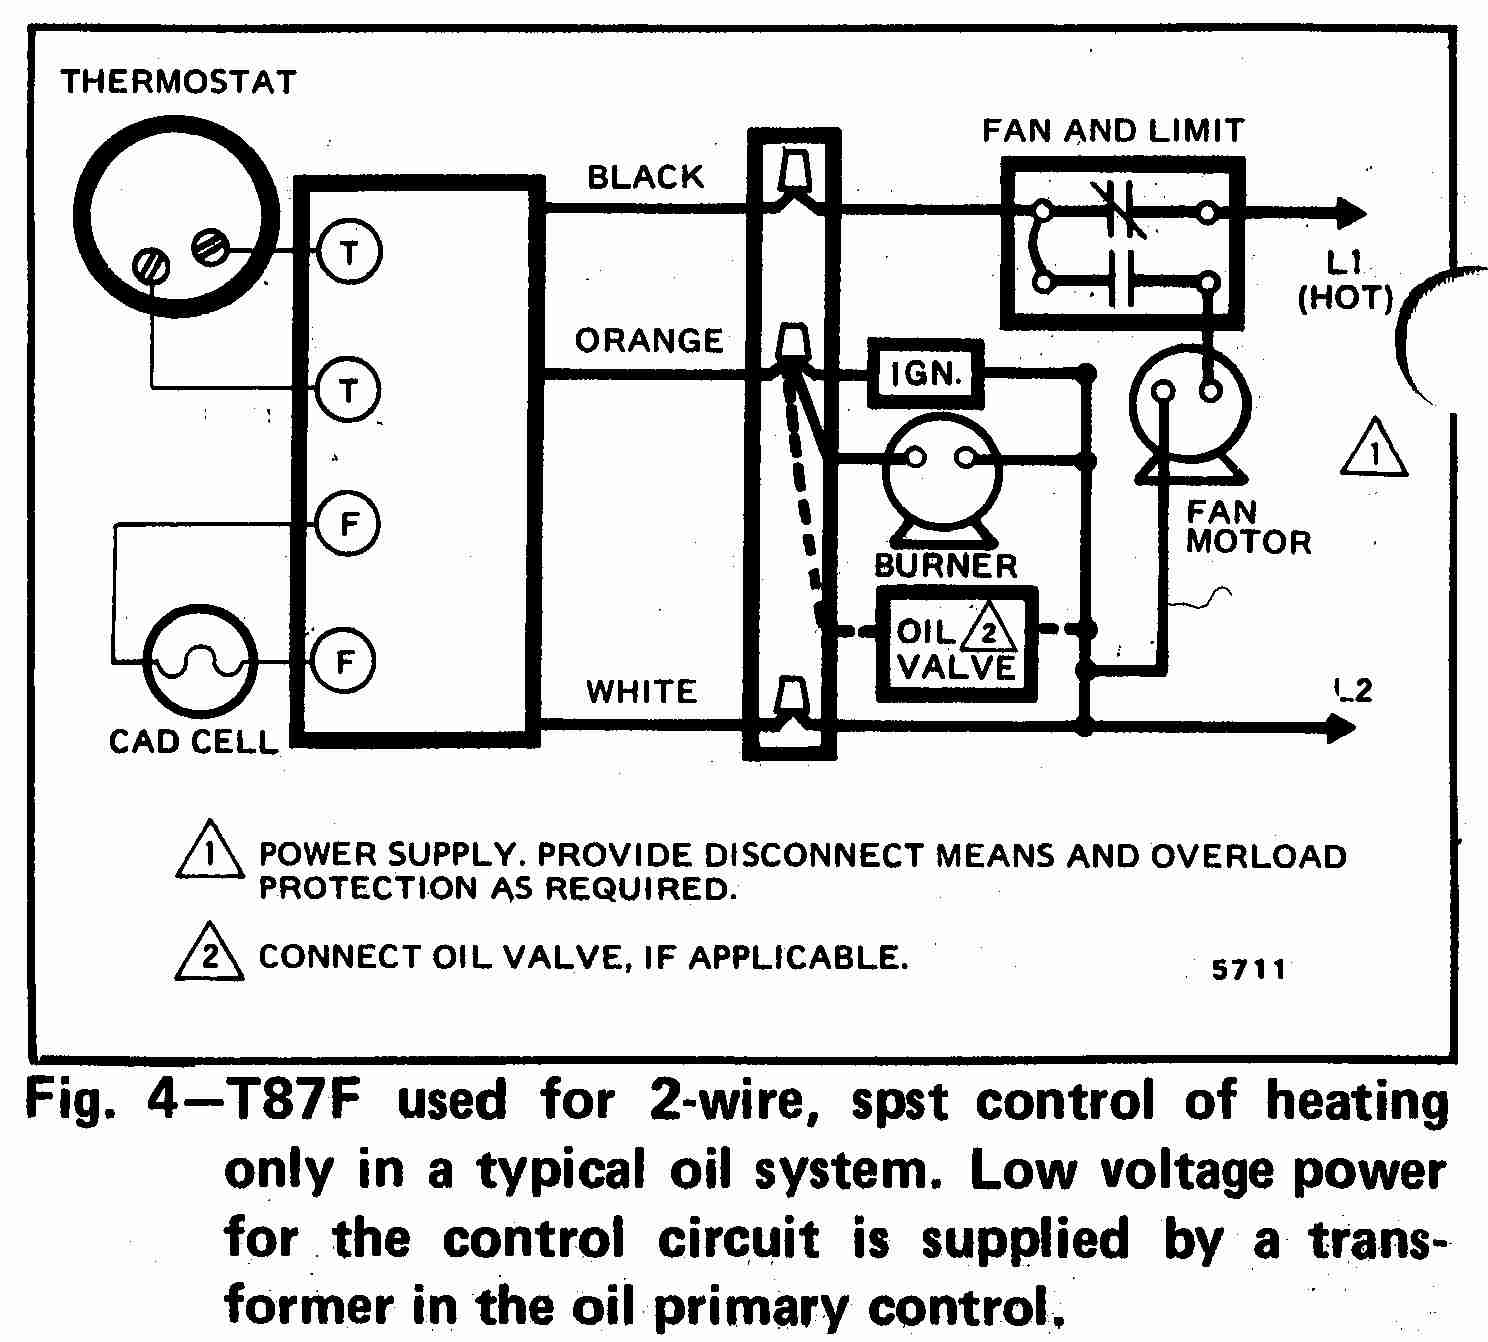 Heating Pad Wiring Diagram Library Wire Colors In A Multiple Switch System Room Thermostat Diagrams For Hvac Systems Rh Inspectapedia Com Zones